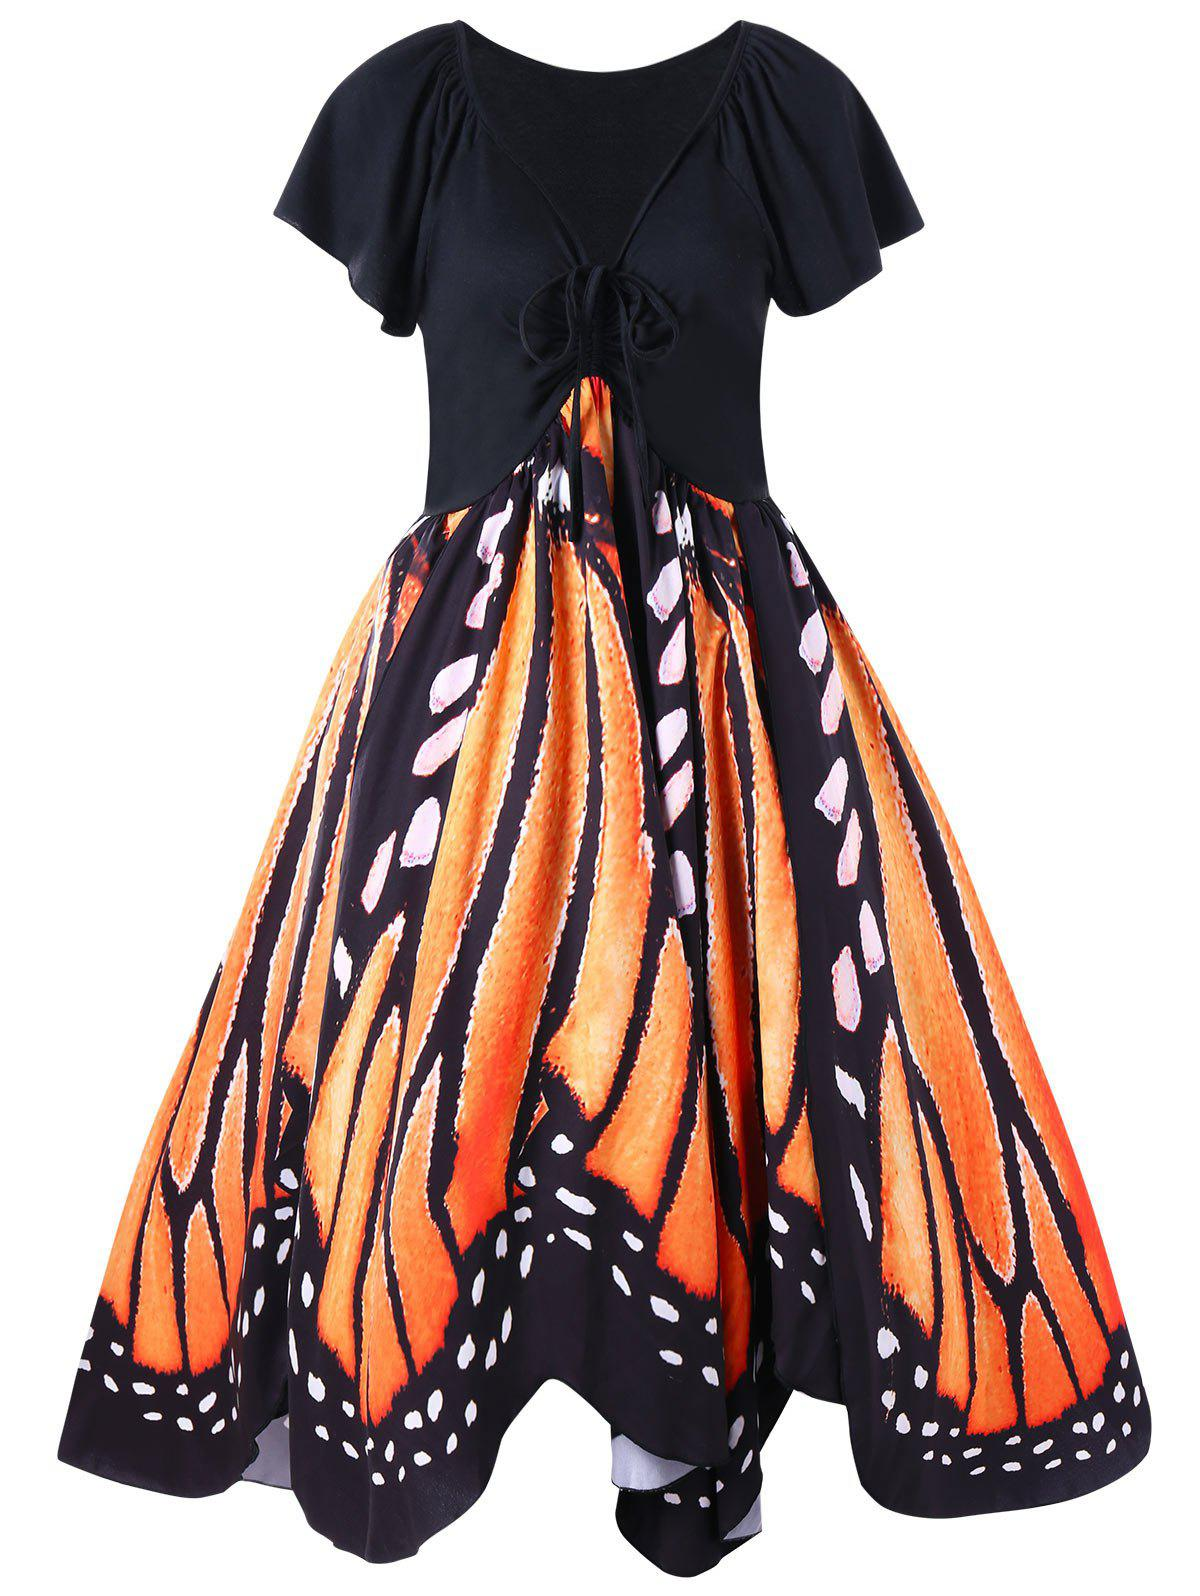 Plus Size Low Cut Butterfly Print Swing DressWOMEN<br><br>Size: XL; Color: ORANGE; Style: Vintage; Material: Polyester,Spandex; Silhouette: A-Line; Dresses Length: Knee-Length; Neckline: Plunging Neck; Sleeve Length: Short Sleeves; Pattern Type: Butterfly; With Belt: No; Season: Fall,Spring; Weight: 0.3700kg; Package Contents: 1 x Dress;